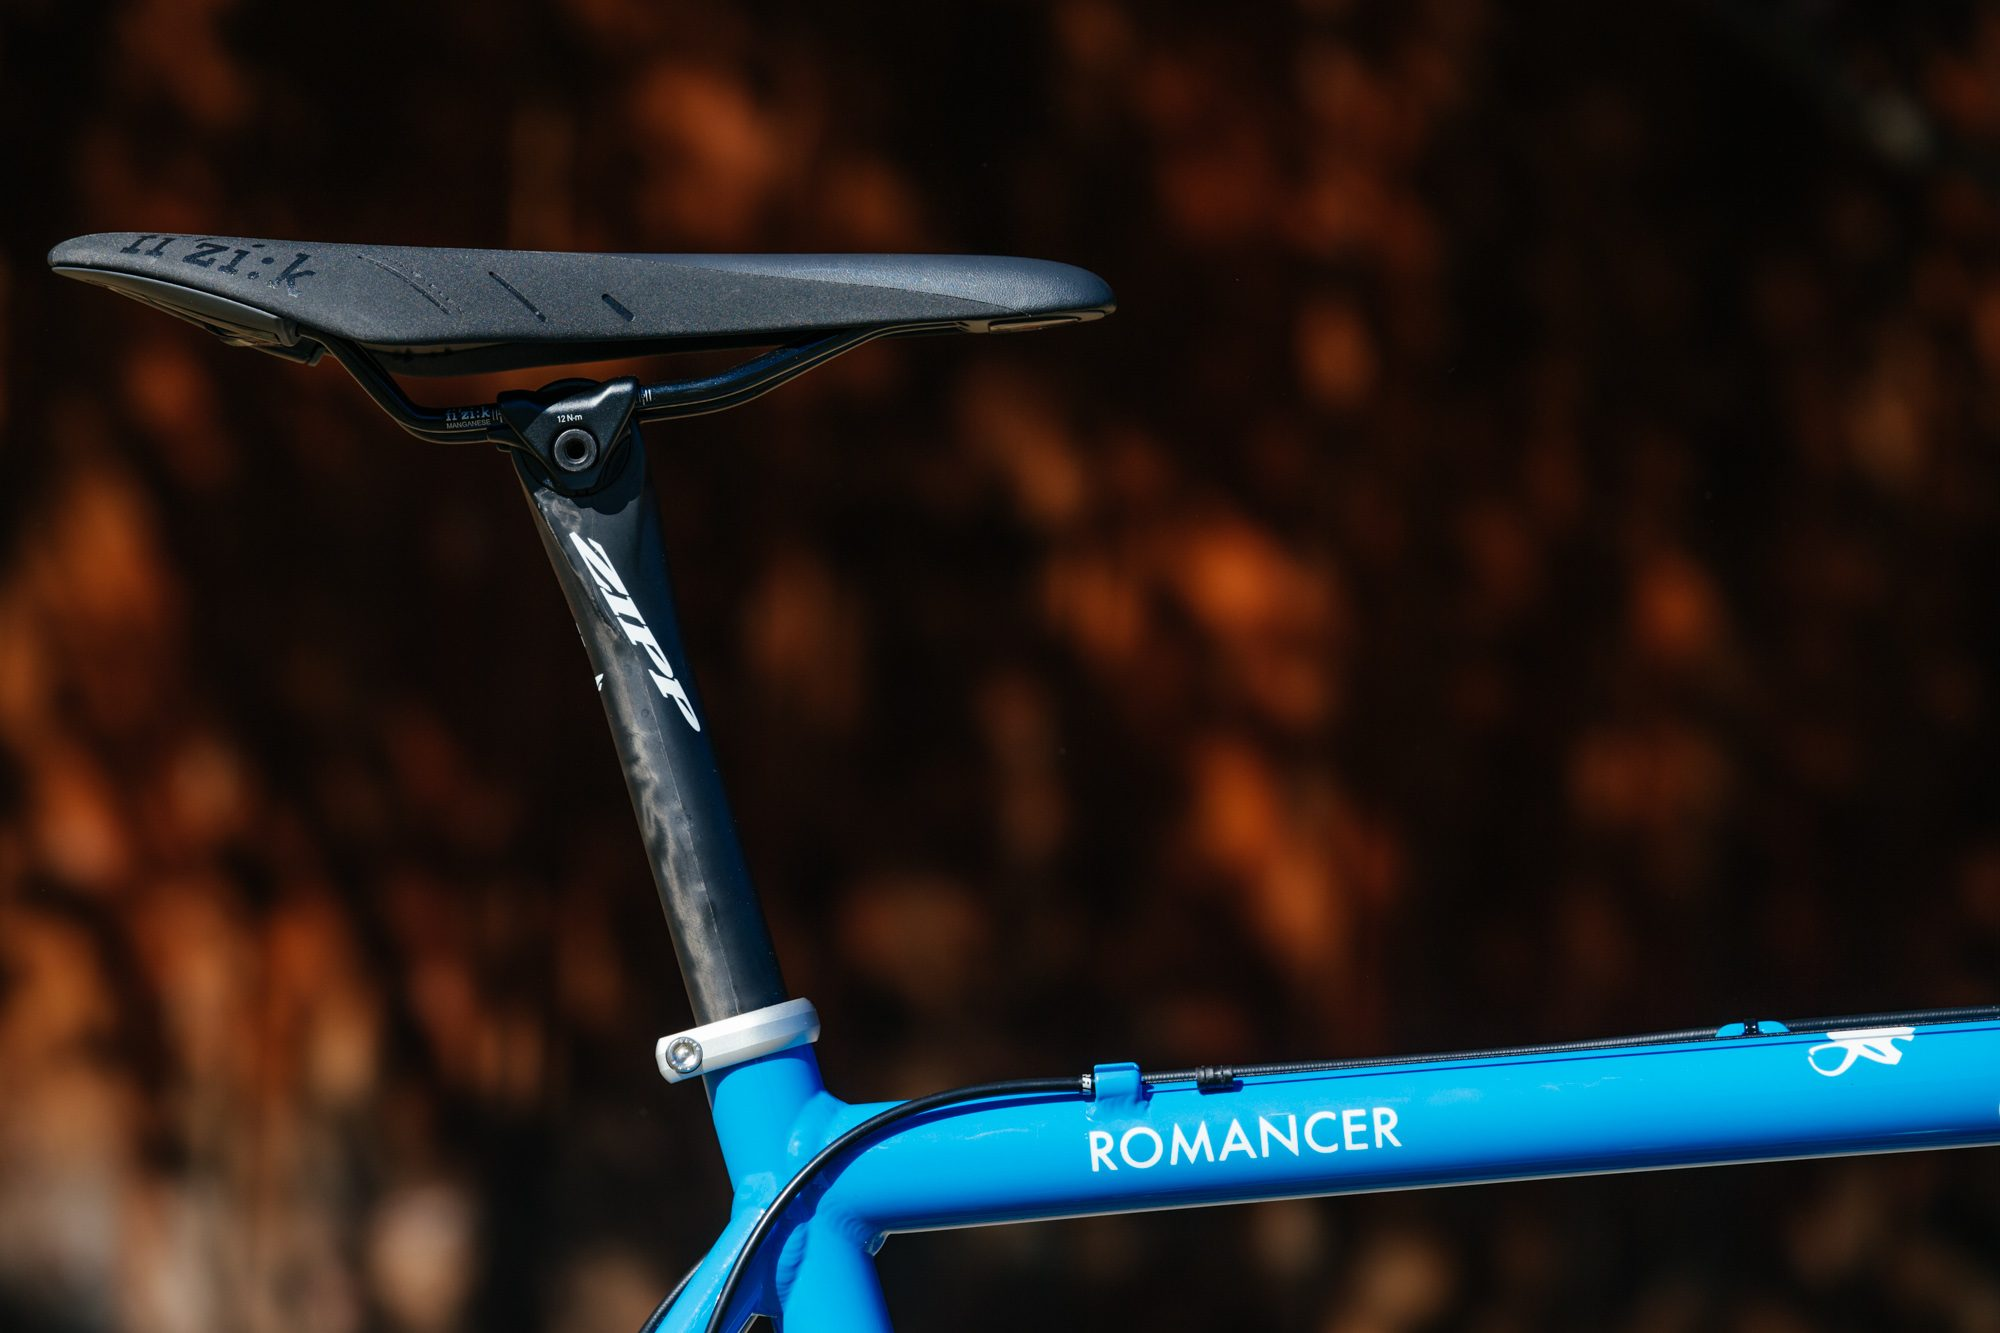 VYNL Wooly Mammoth Romancer 'Cross Bike